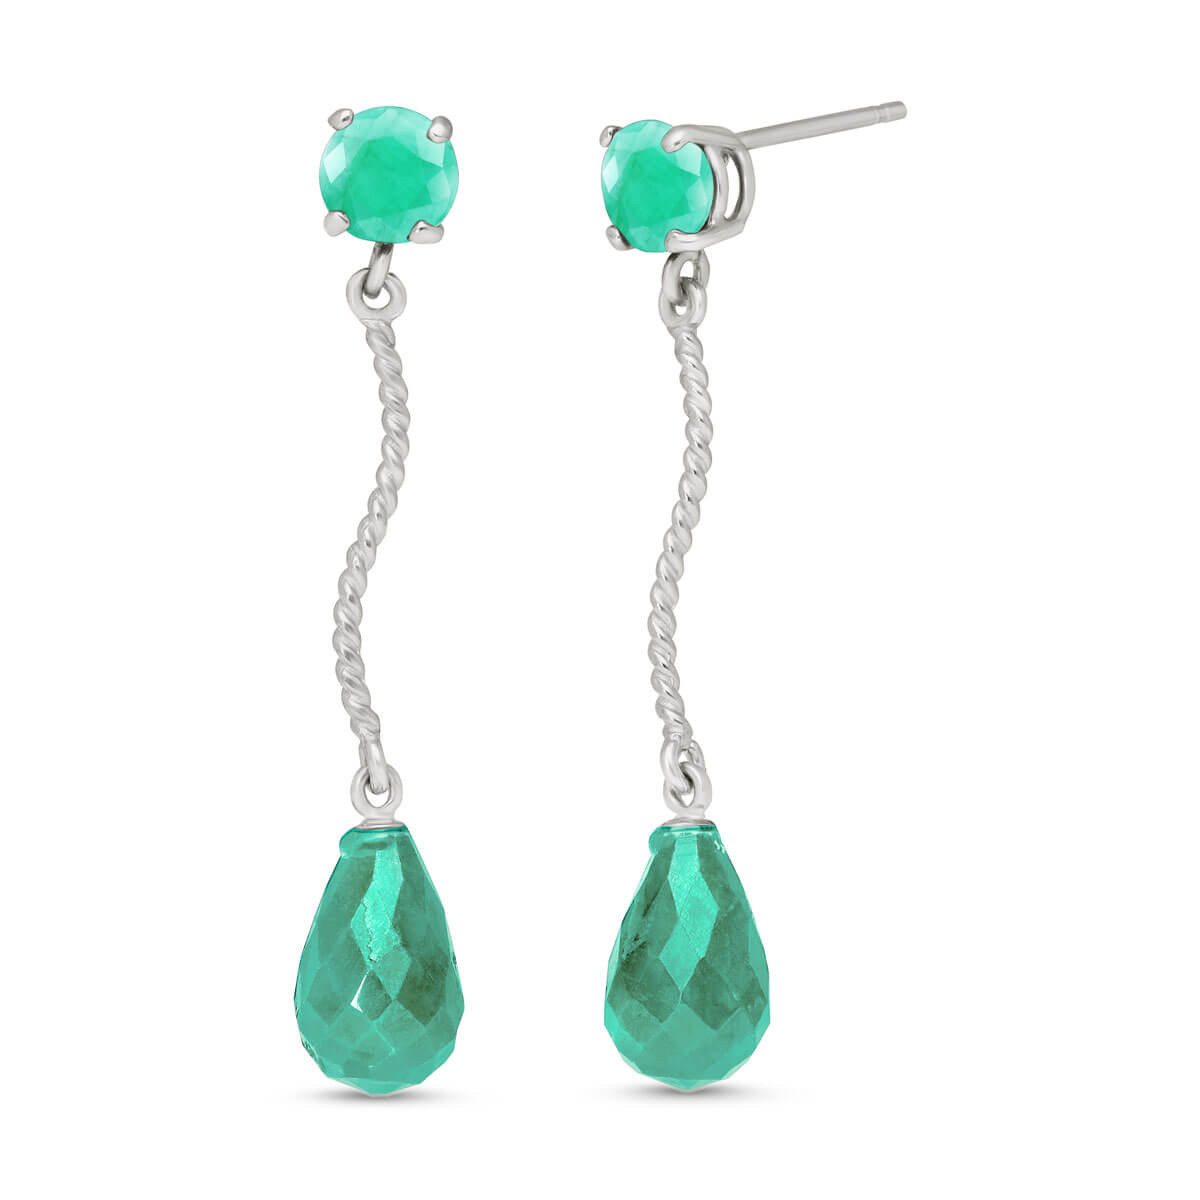 Emerald Lure Drop Earrings 7.9 ctw in 9ct White Gold